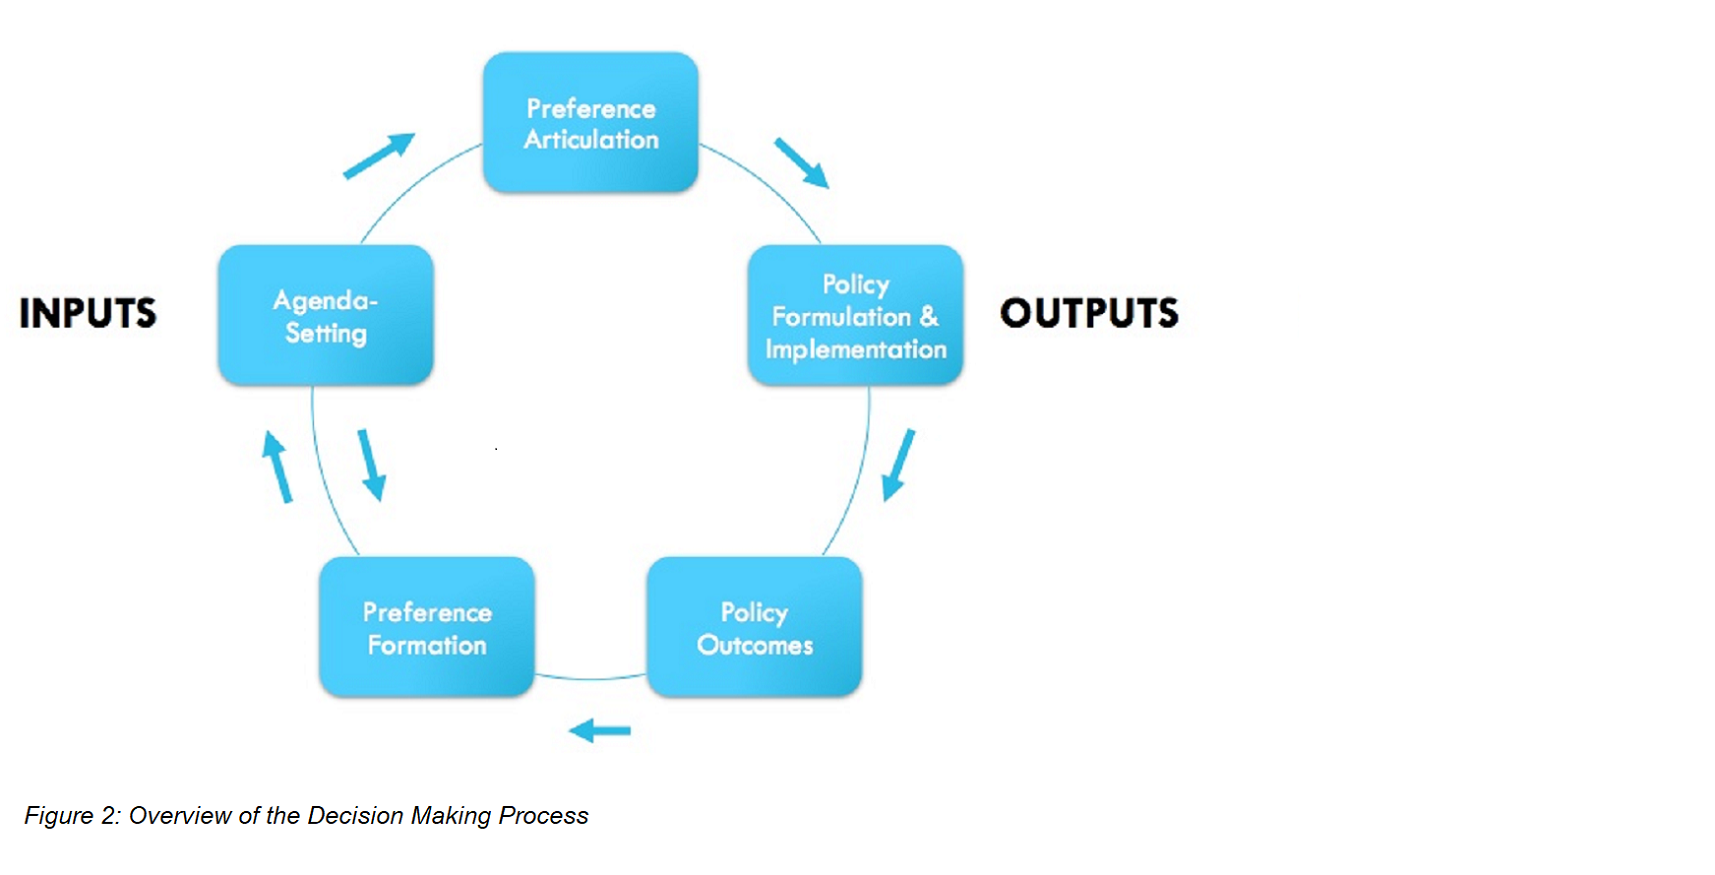 Figure 2: Overview of the Decision-Making Process